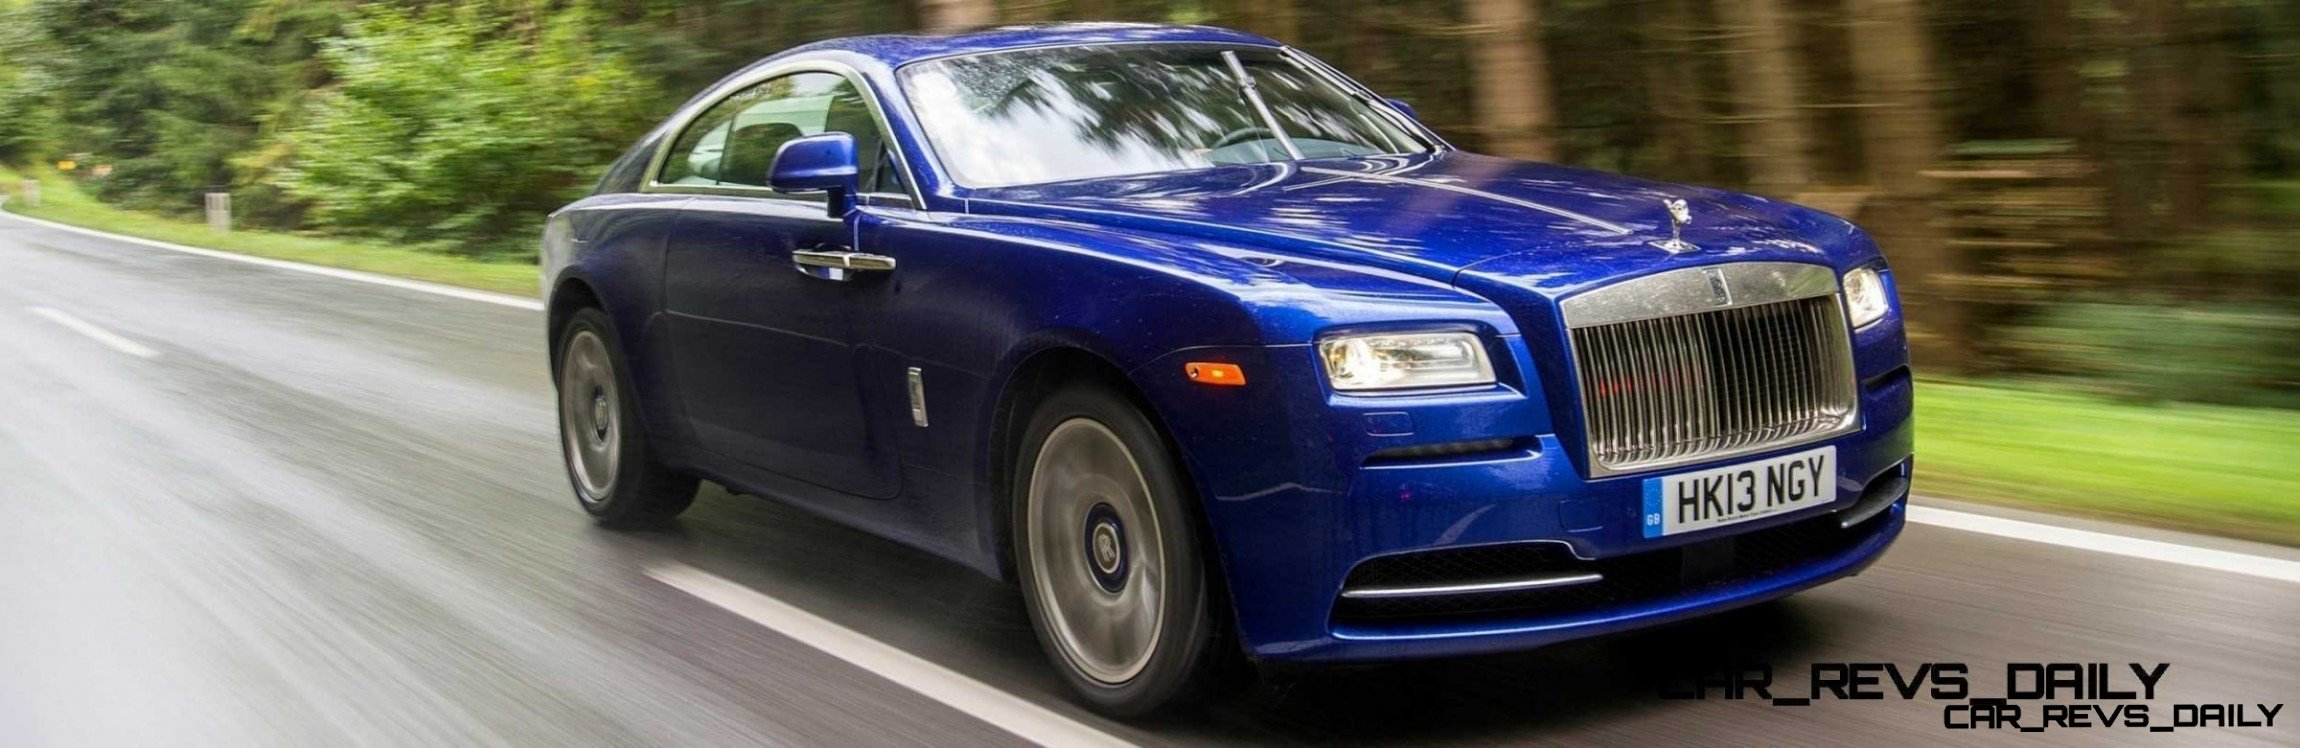 Rolls-Royce Wraith - Color Showcase - Salamanca Blue7